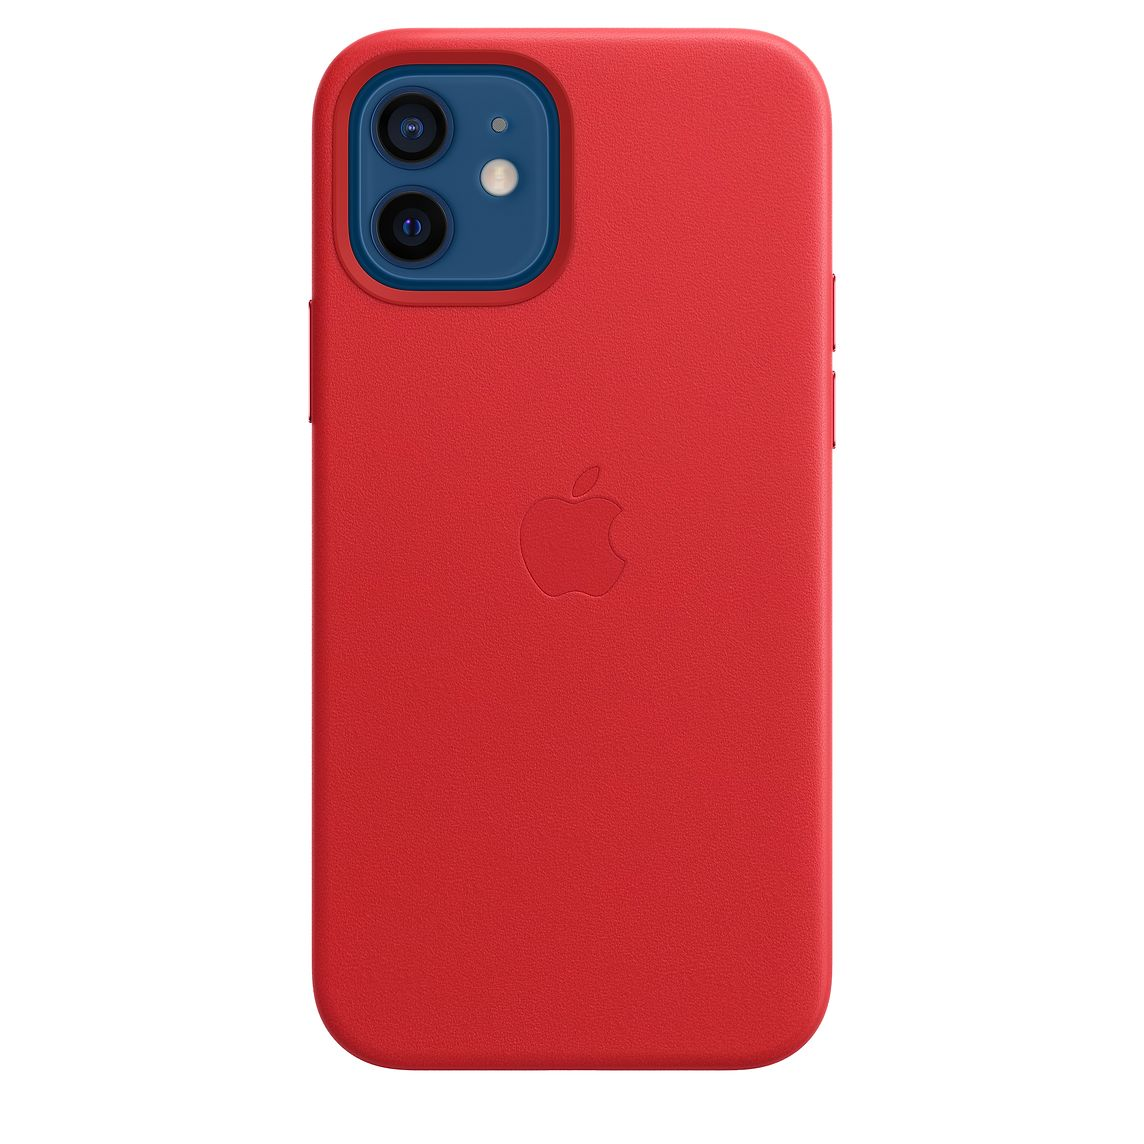 Apple iPhone 12/12Pro Leather Case with MagSafe (PRODUCT)RED